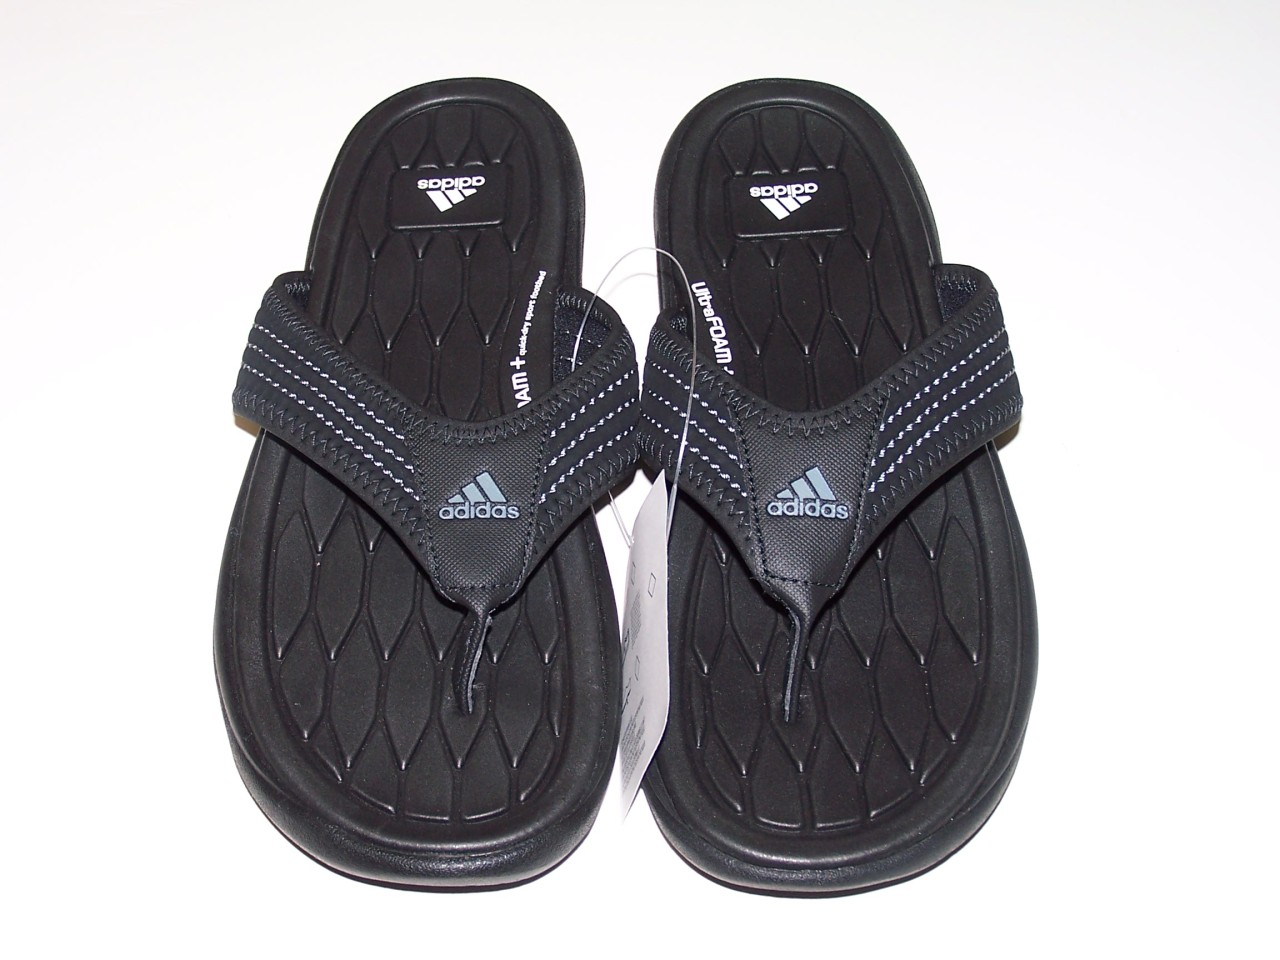 9dd50da13 Buy adidas foam sandals